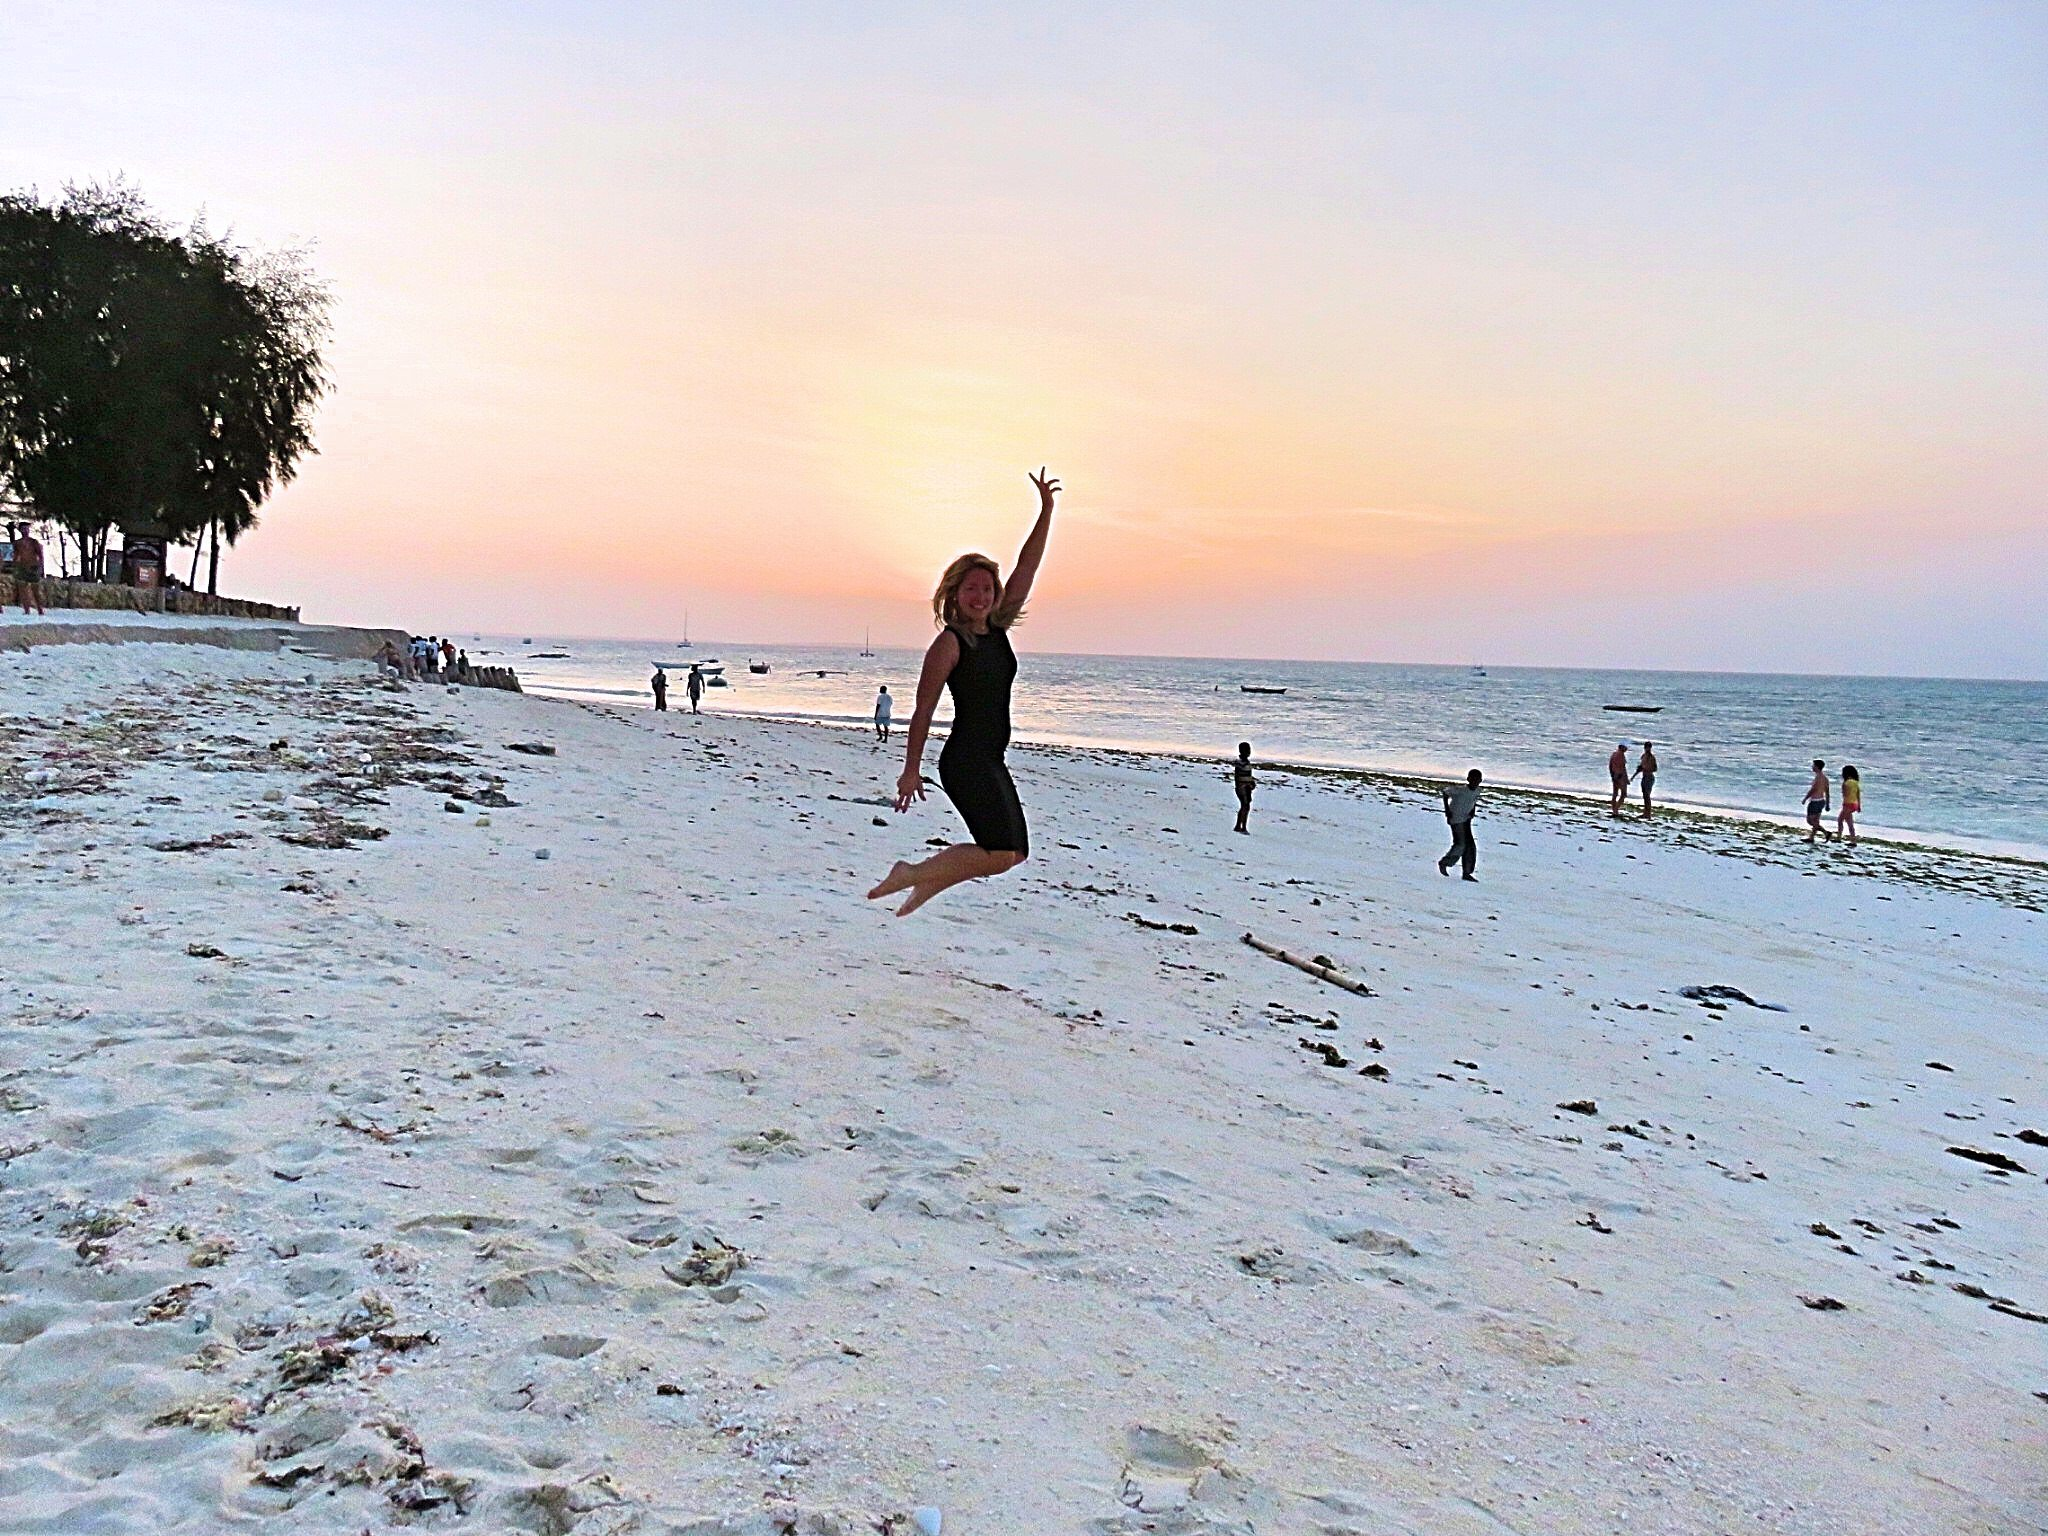 A picture f jumping in the air on the beach outside Smiles beach hotel